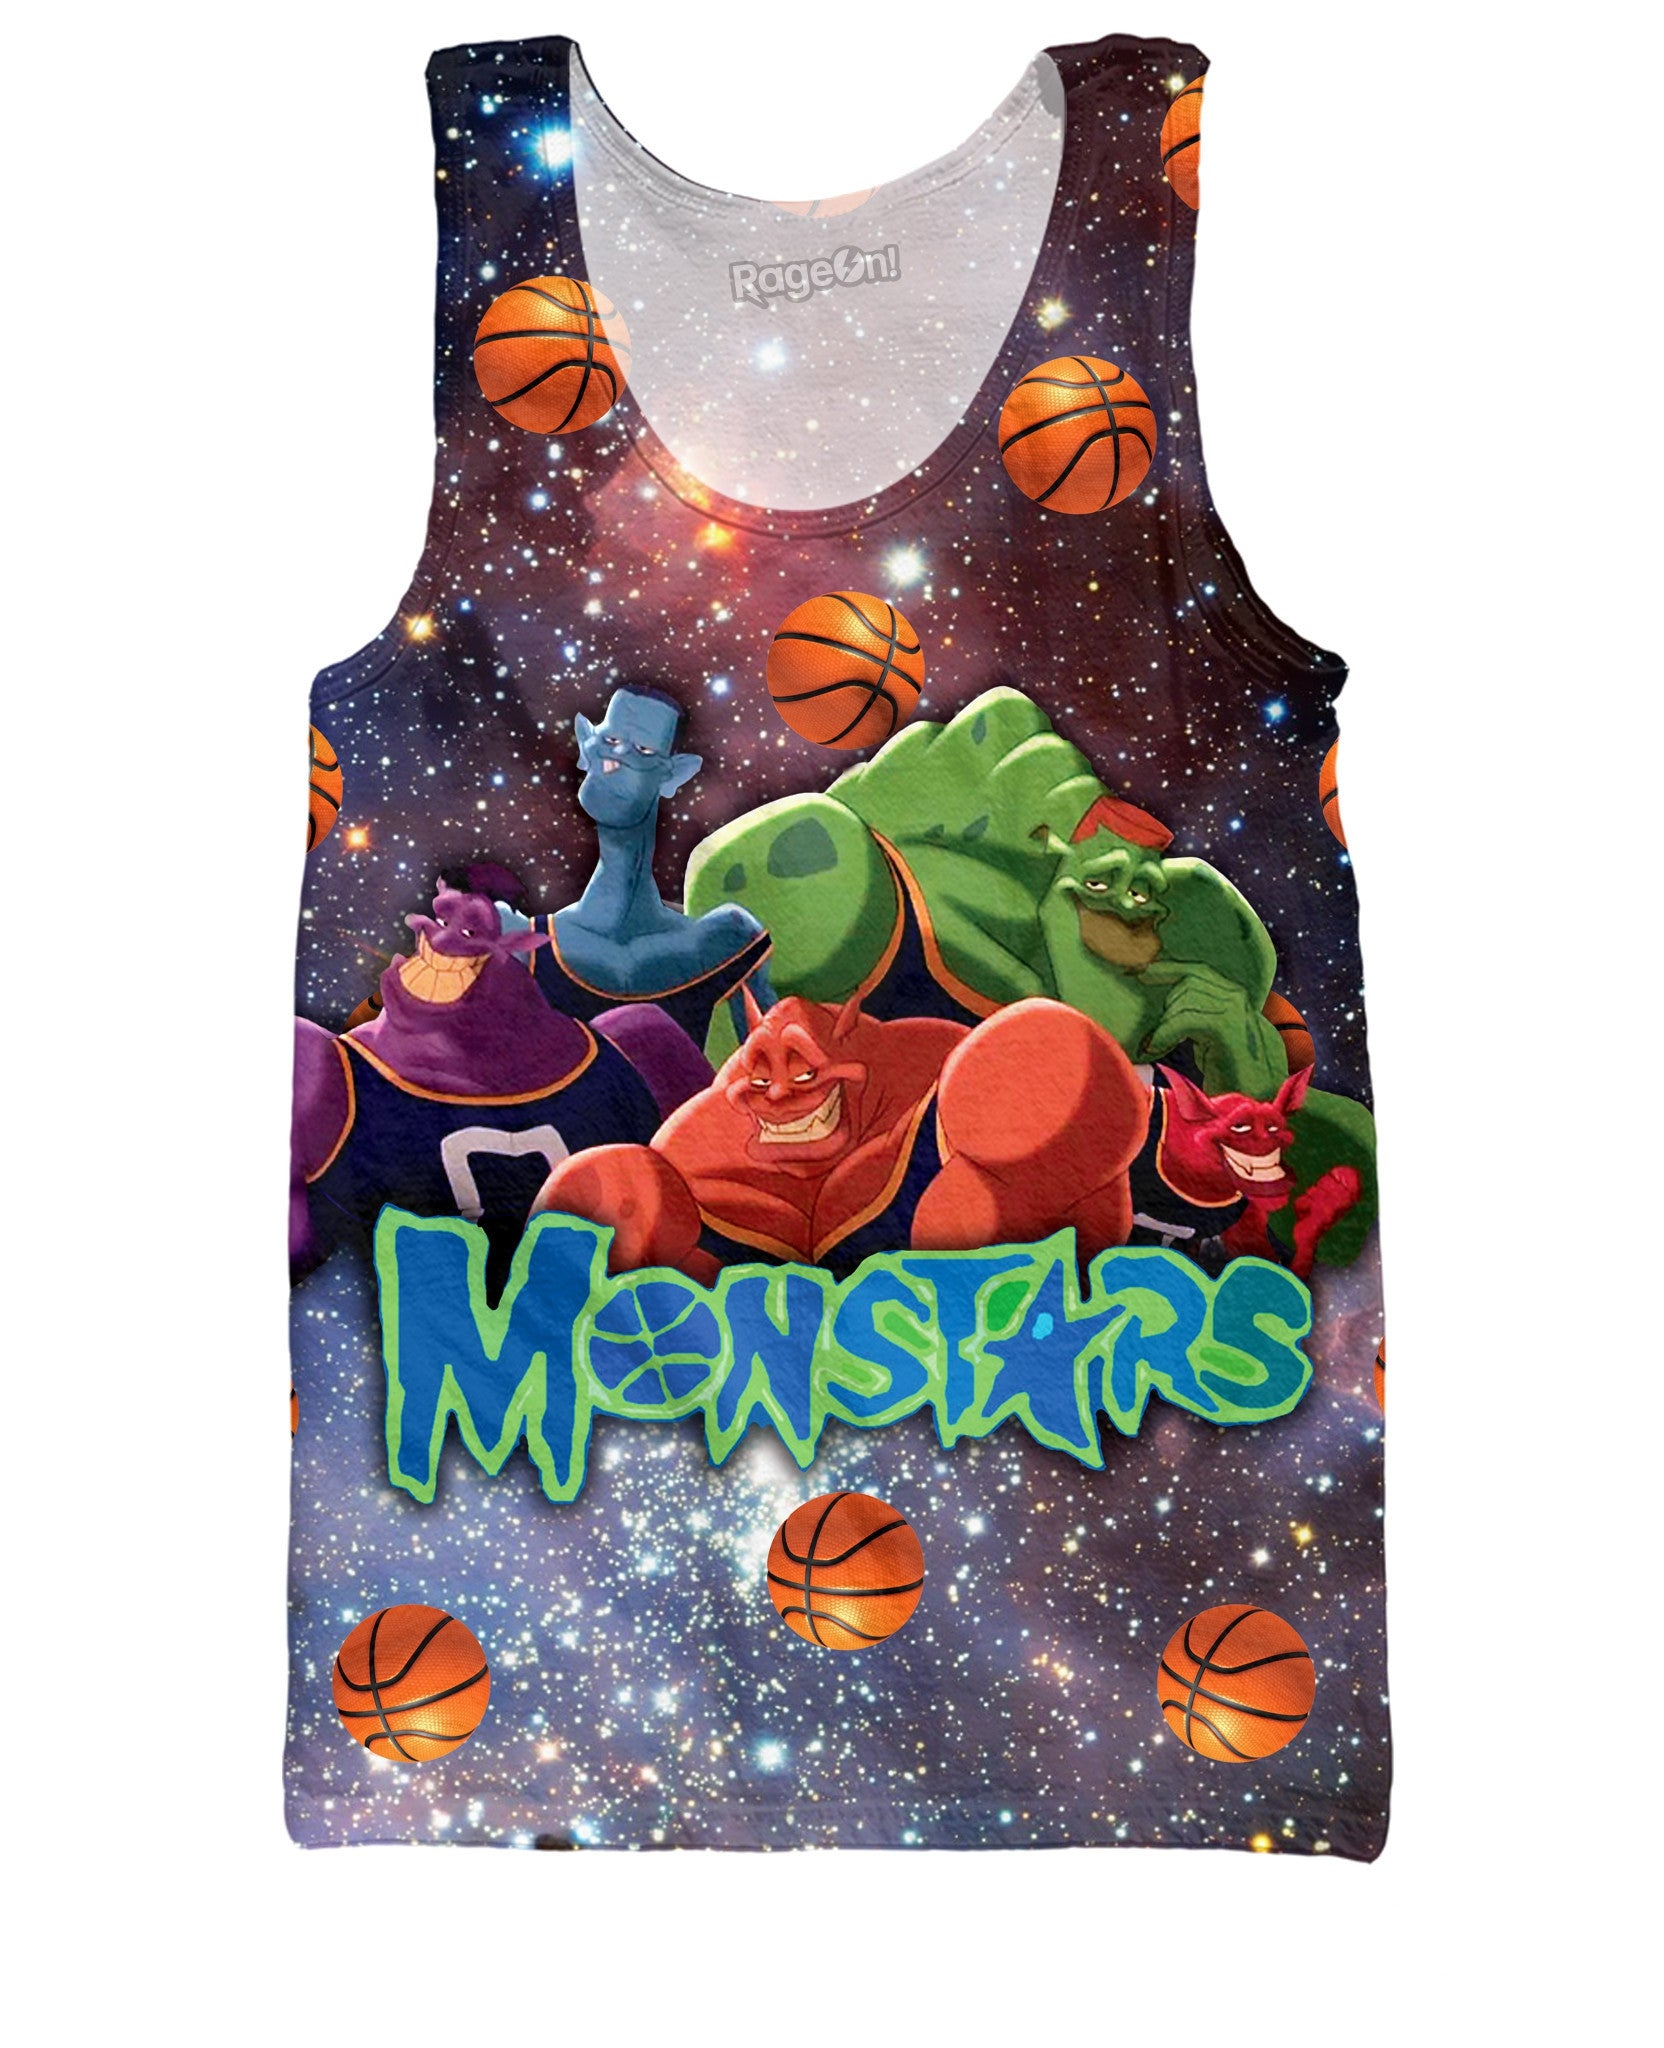 Space Jam Monstars Tank Top